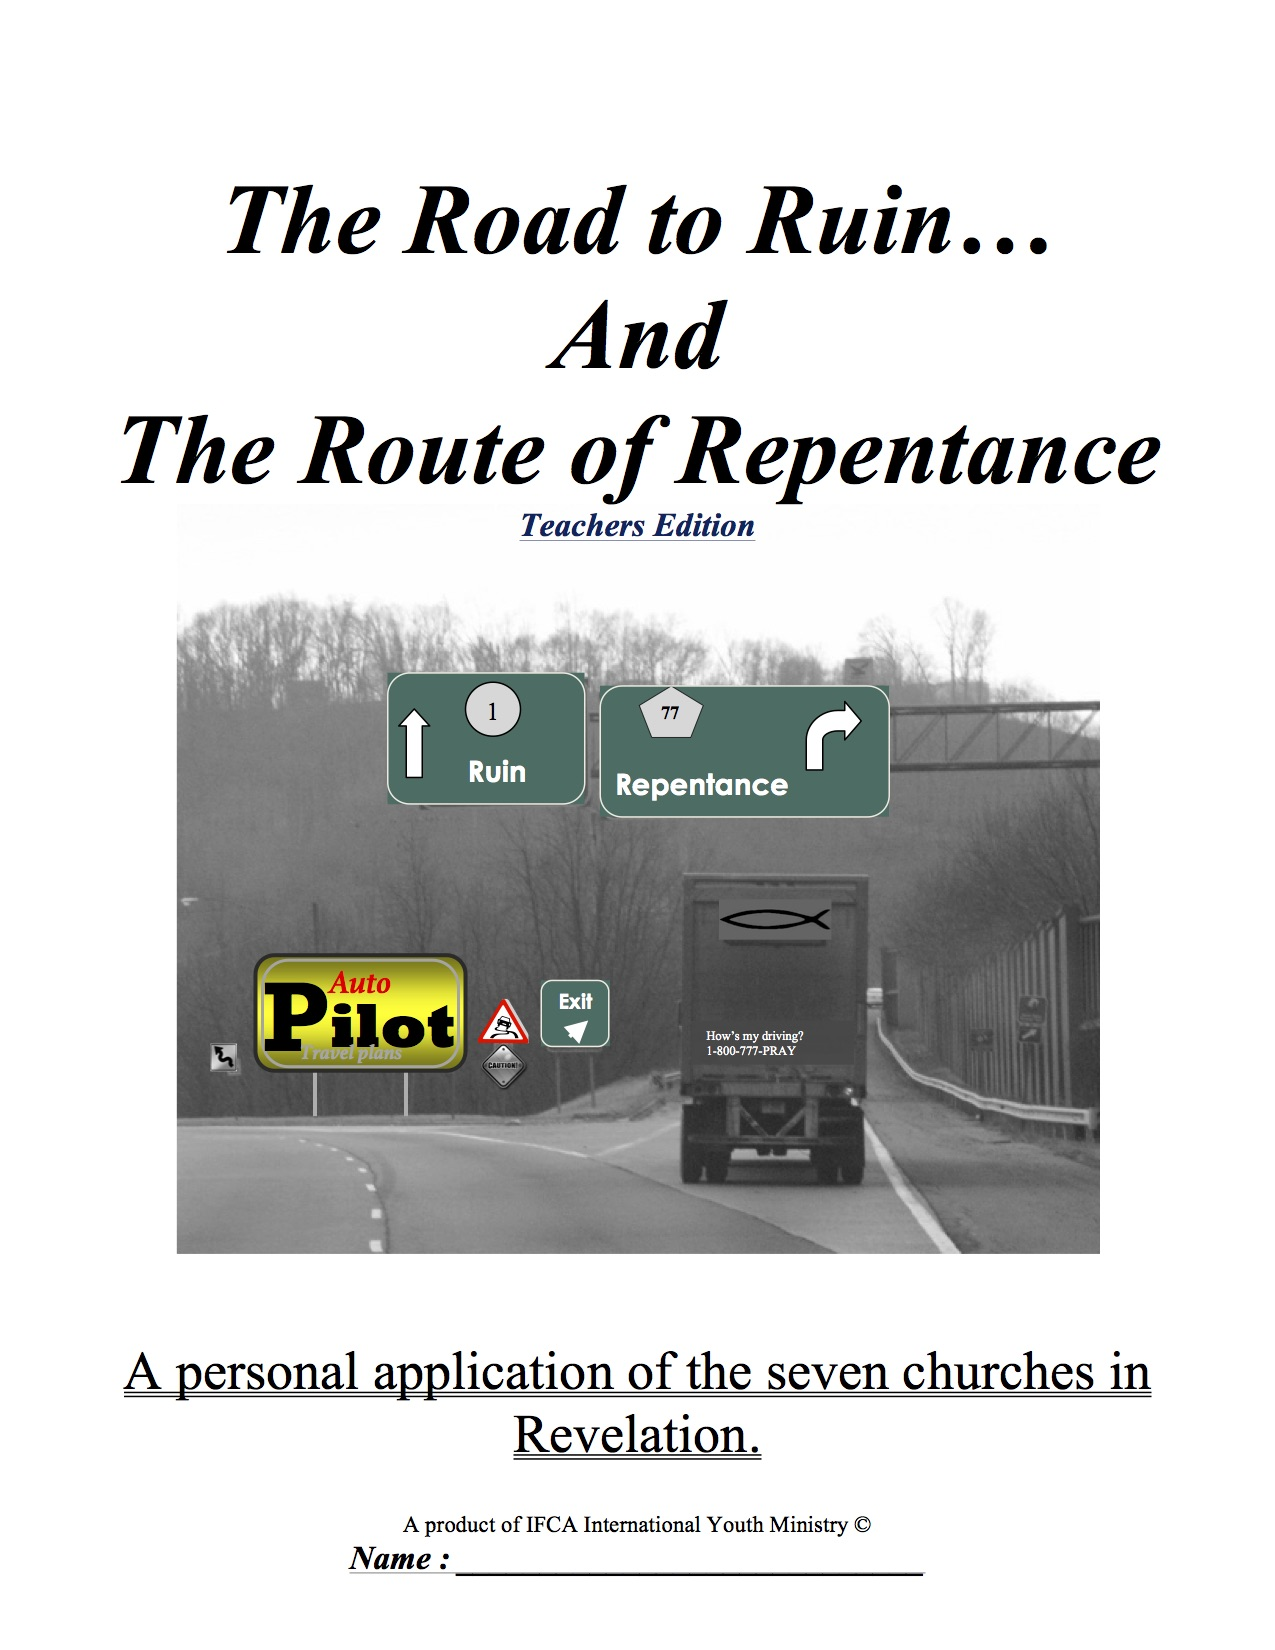 The Road to Ruin and the Route to Repentance